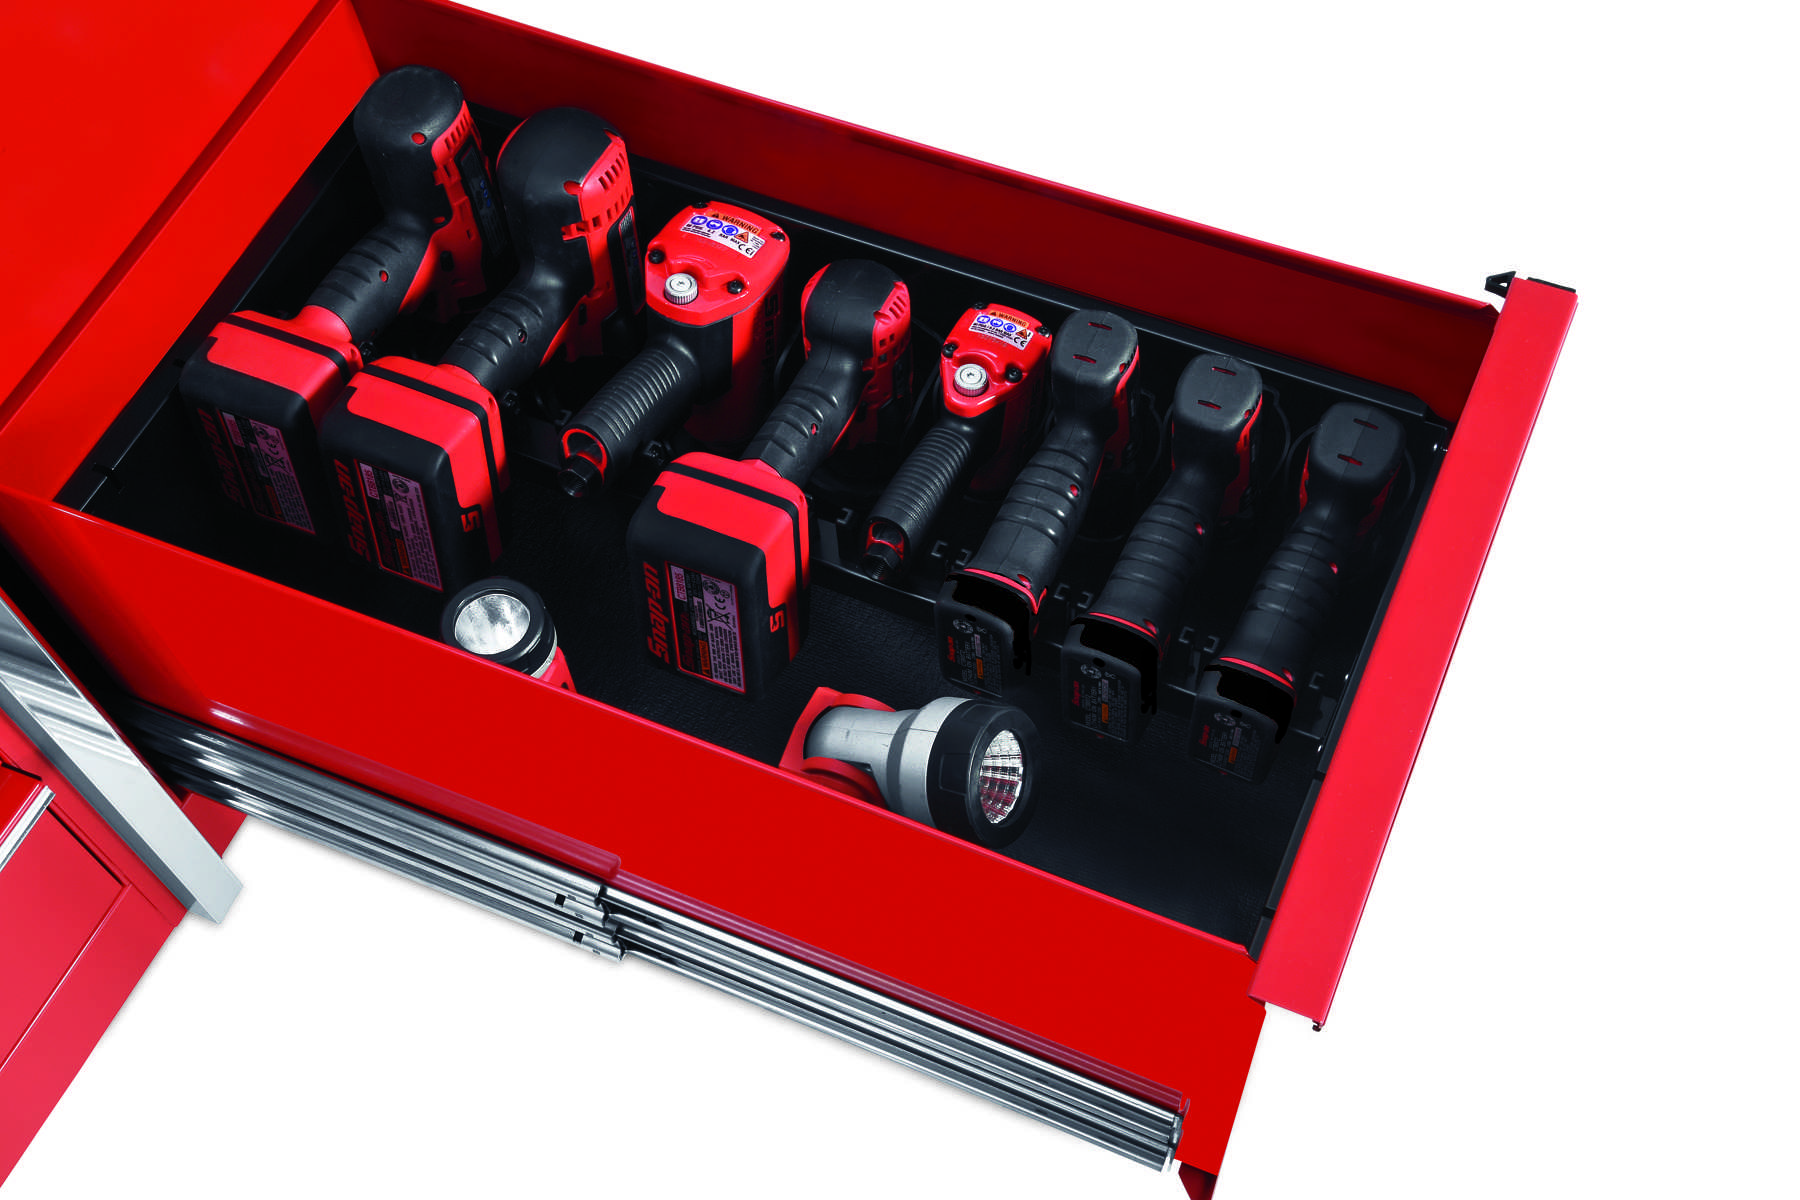 Snap-on introduces Masters Series Roll Cab with PowerDrawer